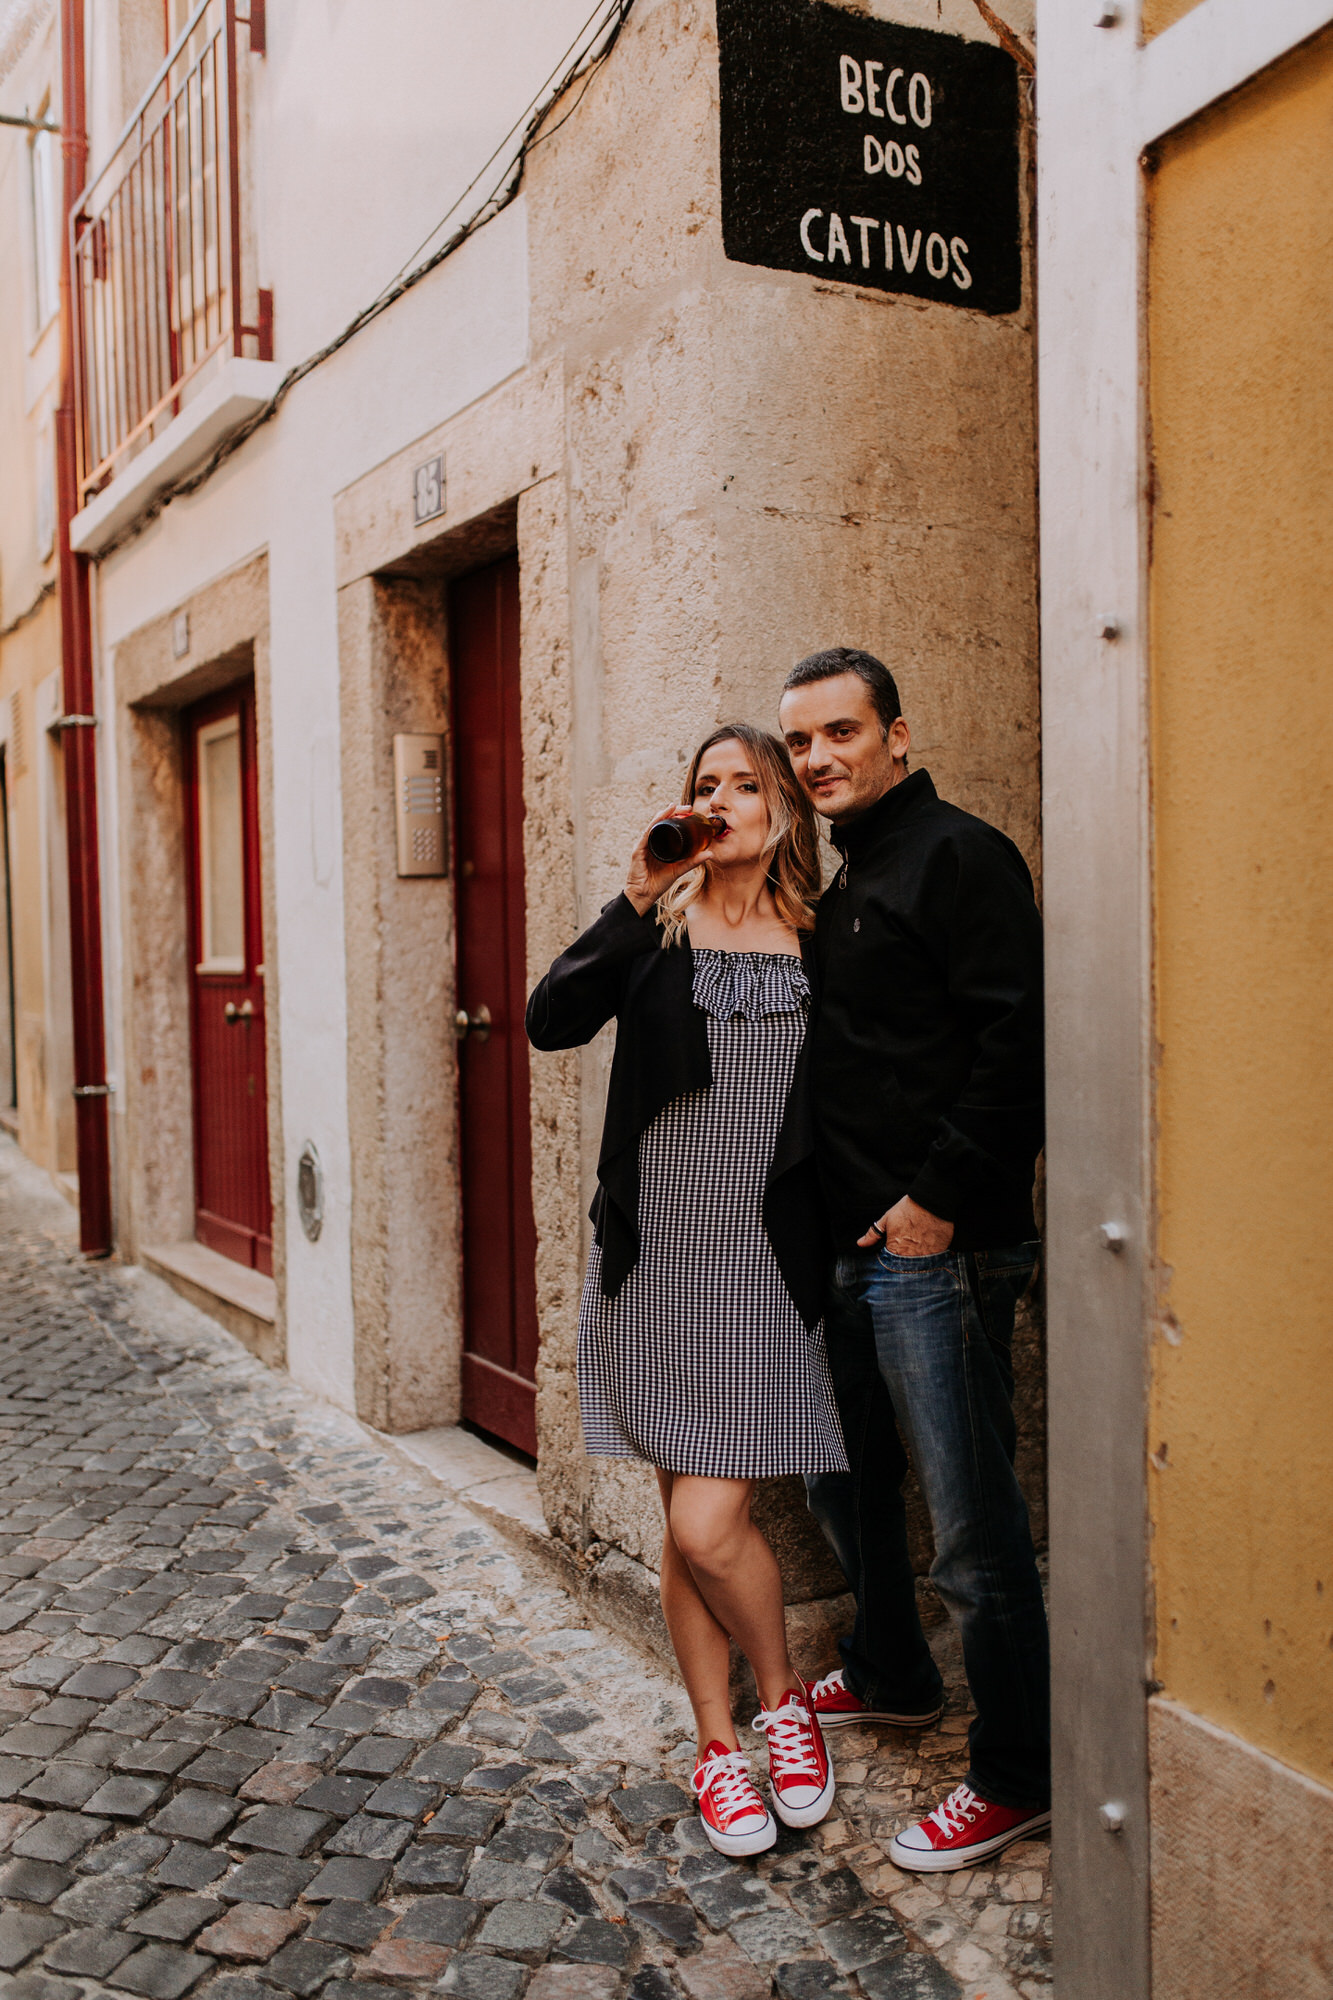 31 -sessao-noivado-engagement-session-alfama-lisboa-town-wedding-photography-photographer-natural-best-venue-planner-destination-filipe-santiago-fotografia